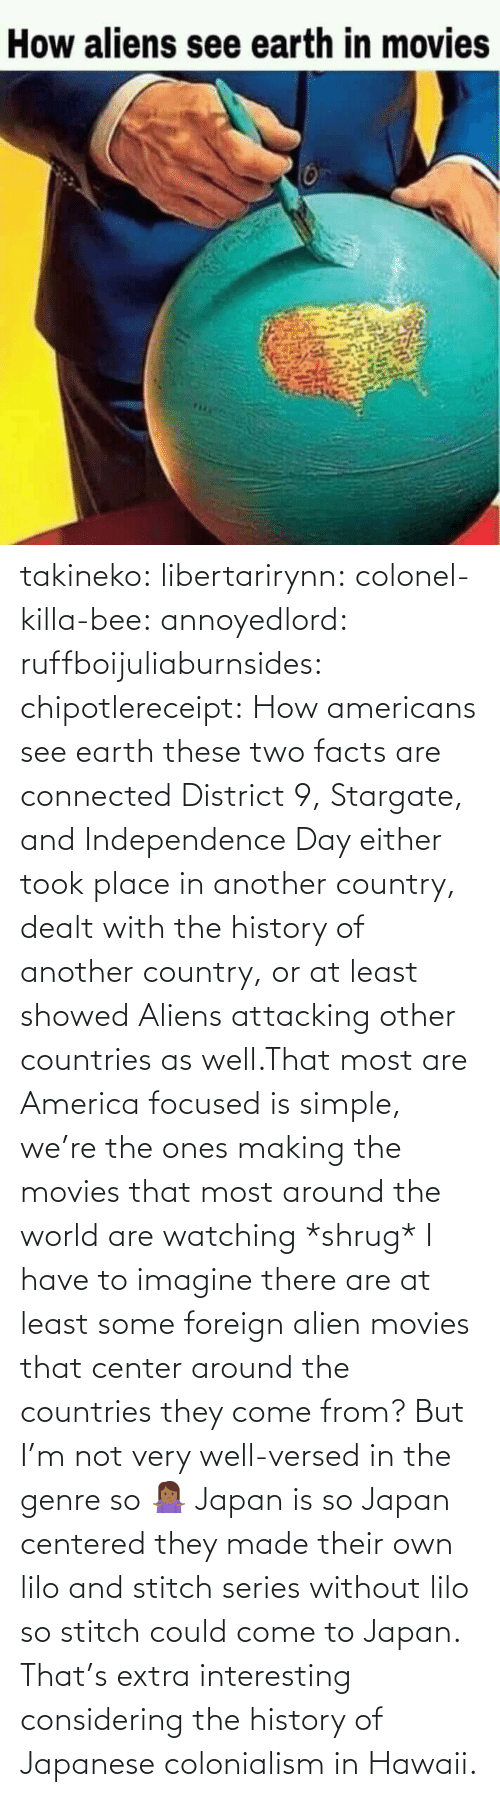 Hawaii: takineko:  libertarirynn:  colonel-killa-bee:  annoyedlord: ruffboijuliaburnsides:  chipotlereceipt: How americans see earth these two facts are connected     District 9, Stargate, and Independence Day either took place in another country, dealt with the history of another country, or at least showed Aliens attacking other countries as well.That most are America focused is simple, we're the ones making the movies that most around the world are watching *shrug*   I have to imagine there are at least some foreign alien movies that center around the countries they come from? But I'm not very well-versed in the genre so 🤷🏾‍♀️   Japan is so Japan centered they made their own lilo and stitch series without lilo so stitch could come to Japan.    That's extra interesting considering the history of Japanese colonialism in Hawaii.